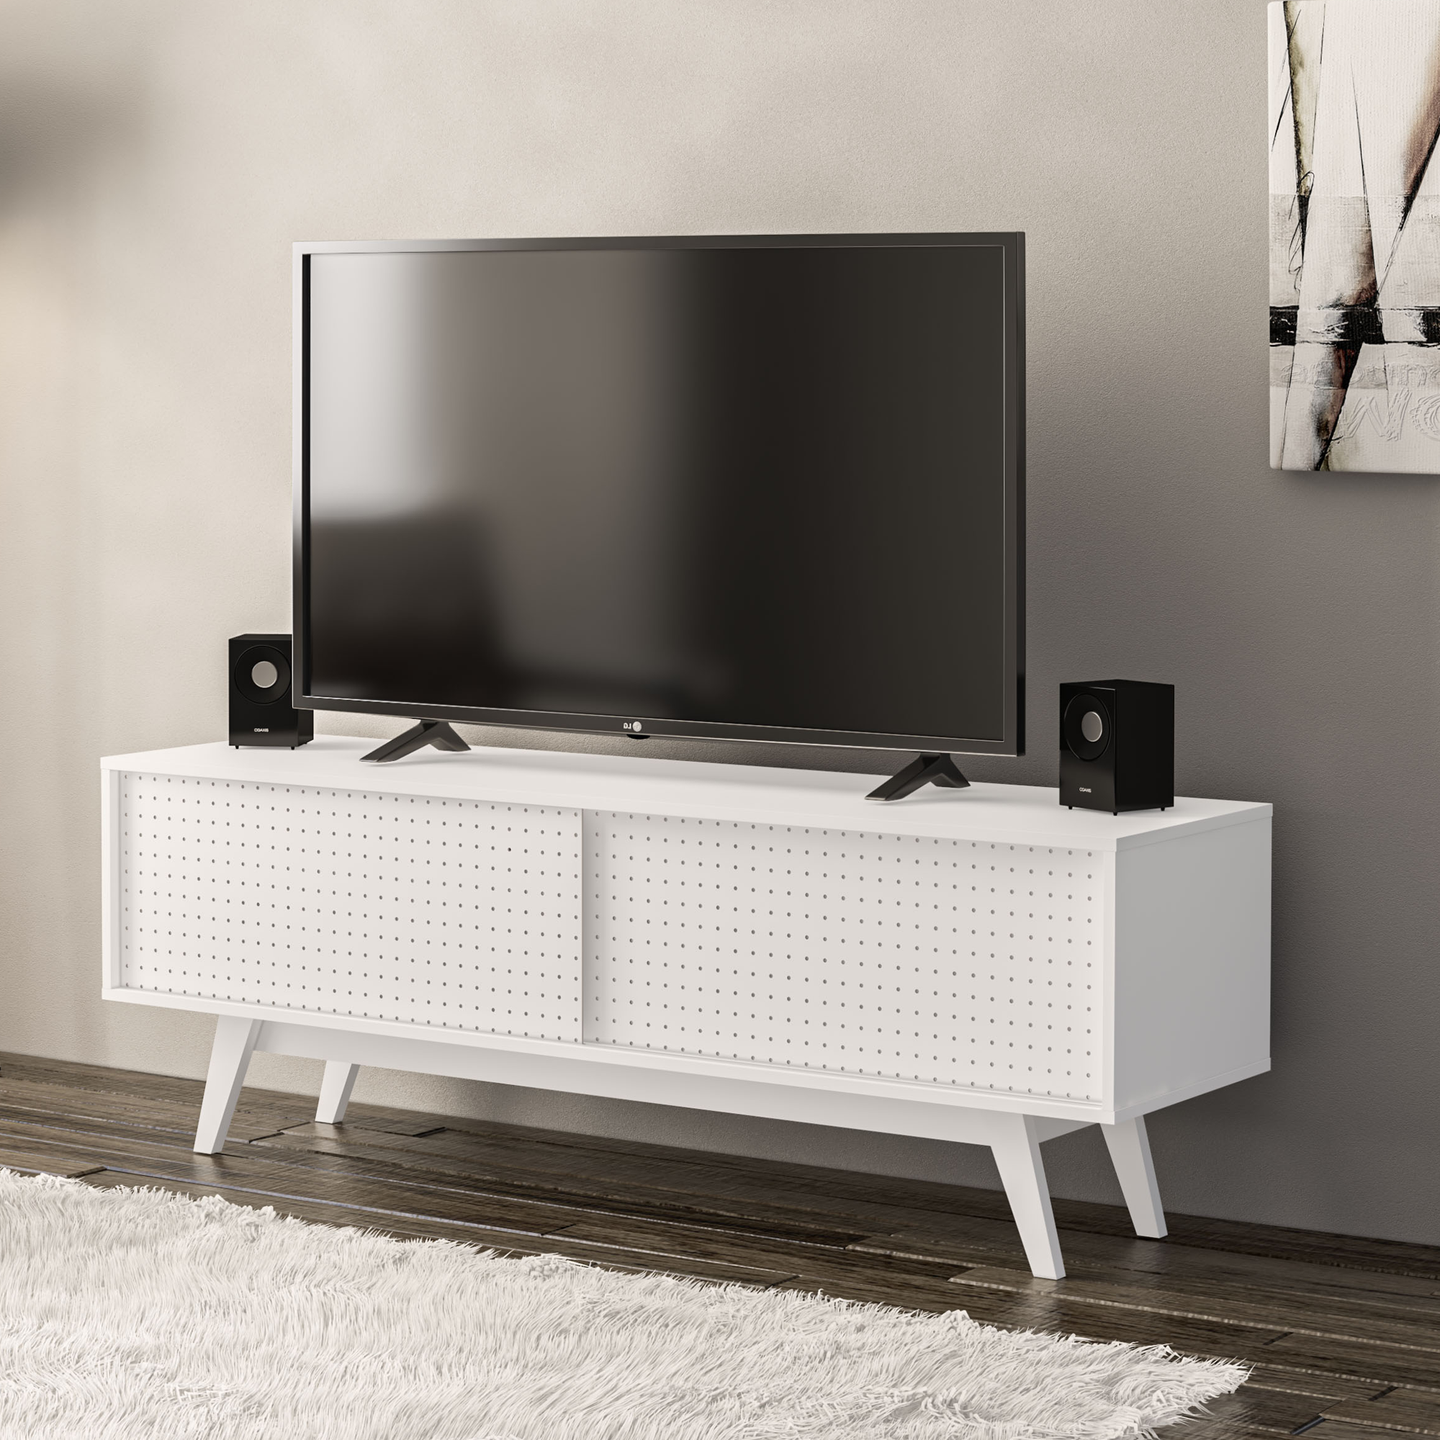 Boahaus Albany TV Stand. TV's up to 60 inches, 01 Cabinet, 03 Closed Compartments, 02 doors.